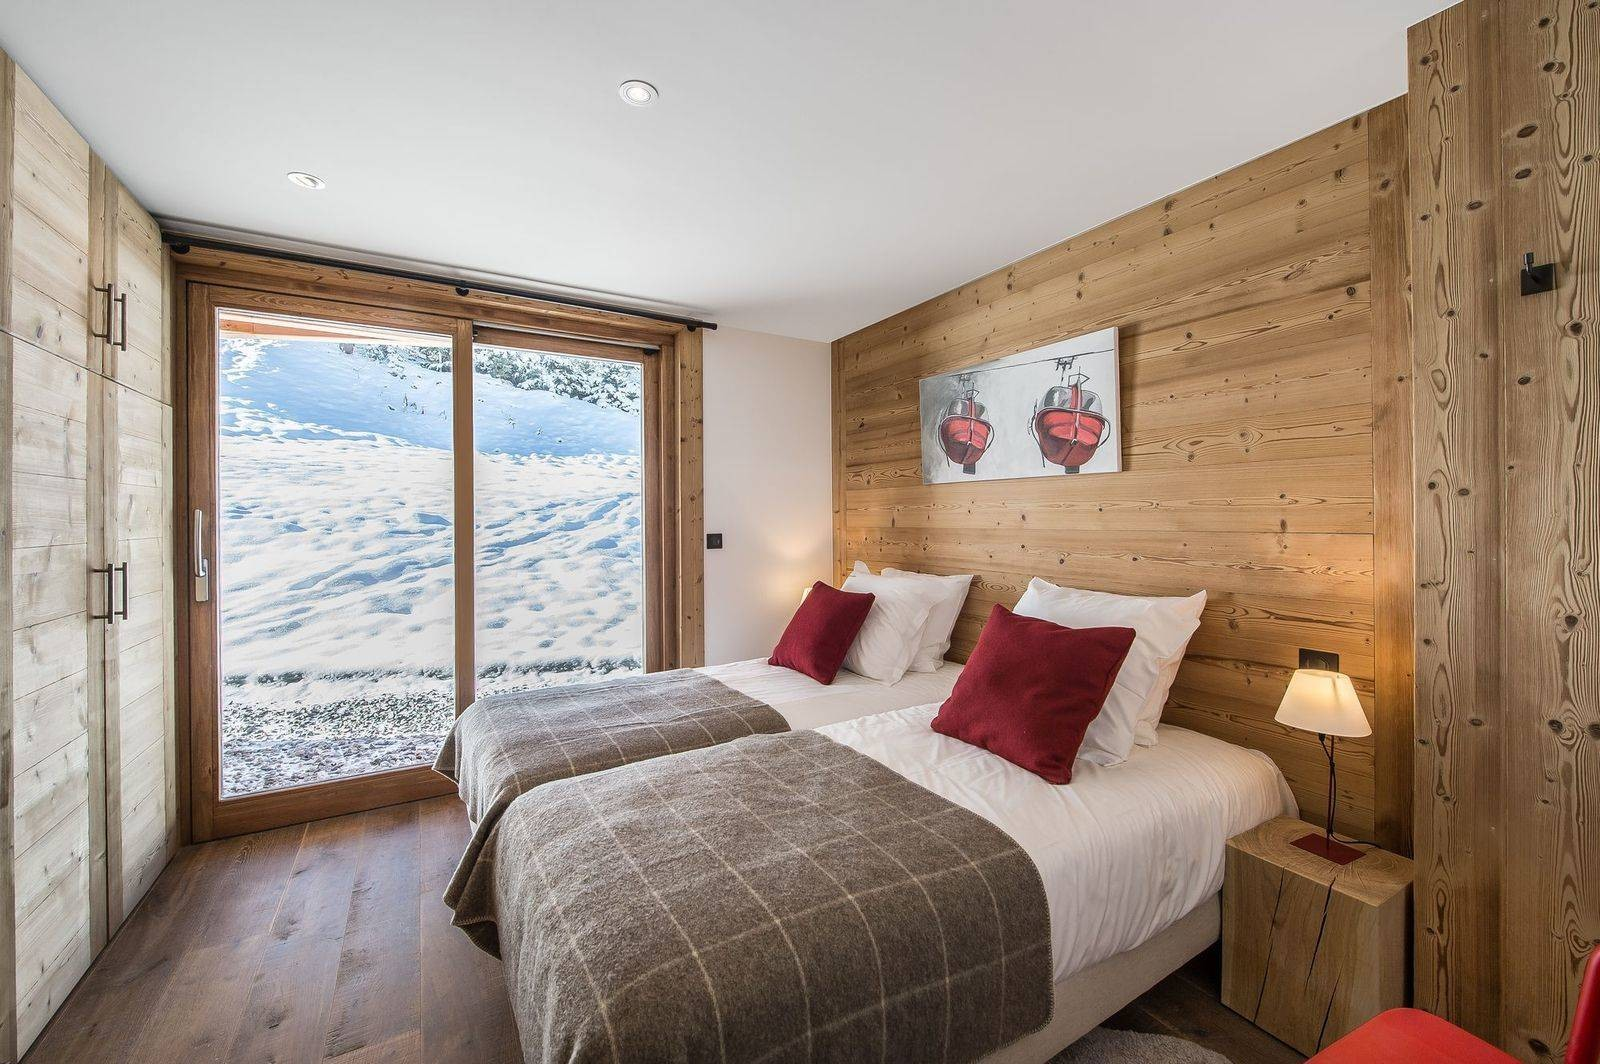 Courchevel 1550 Location Chalet Luxe Nibite Chambre 4